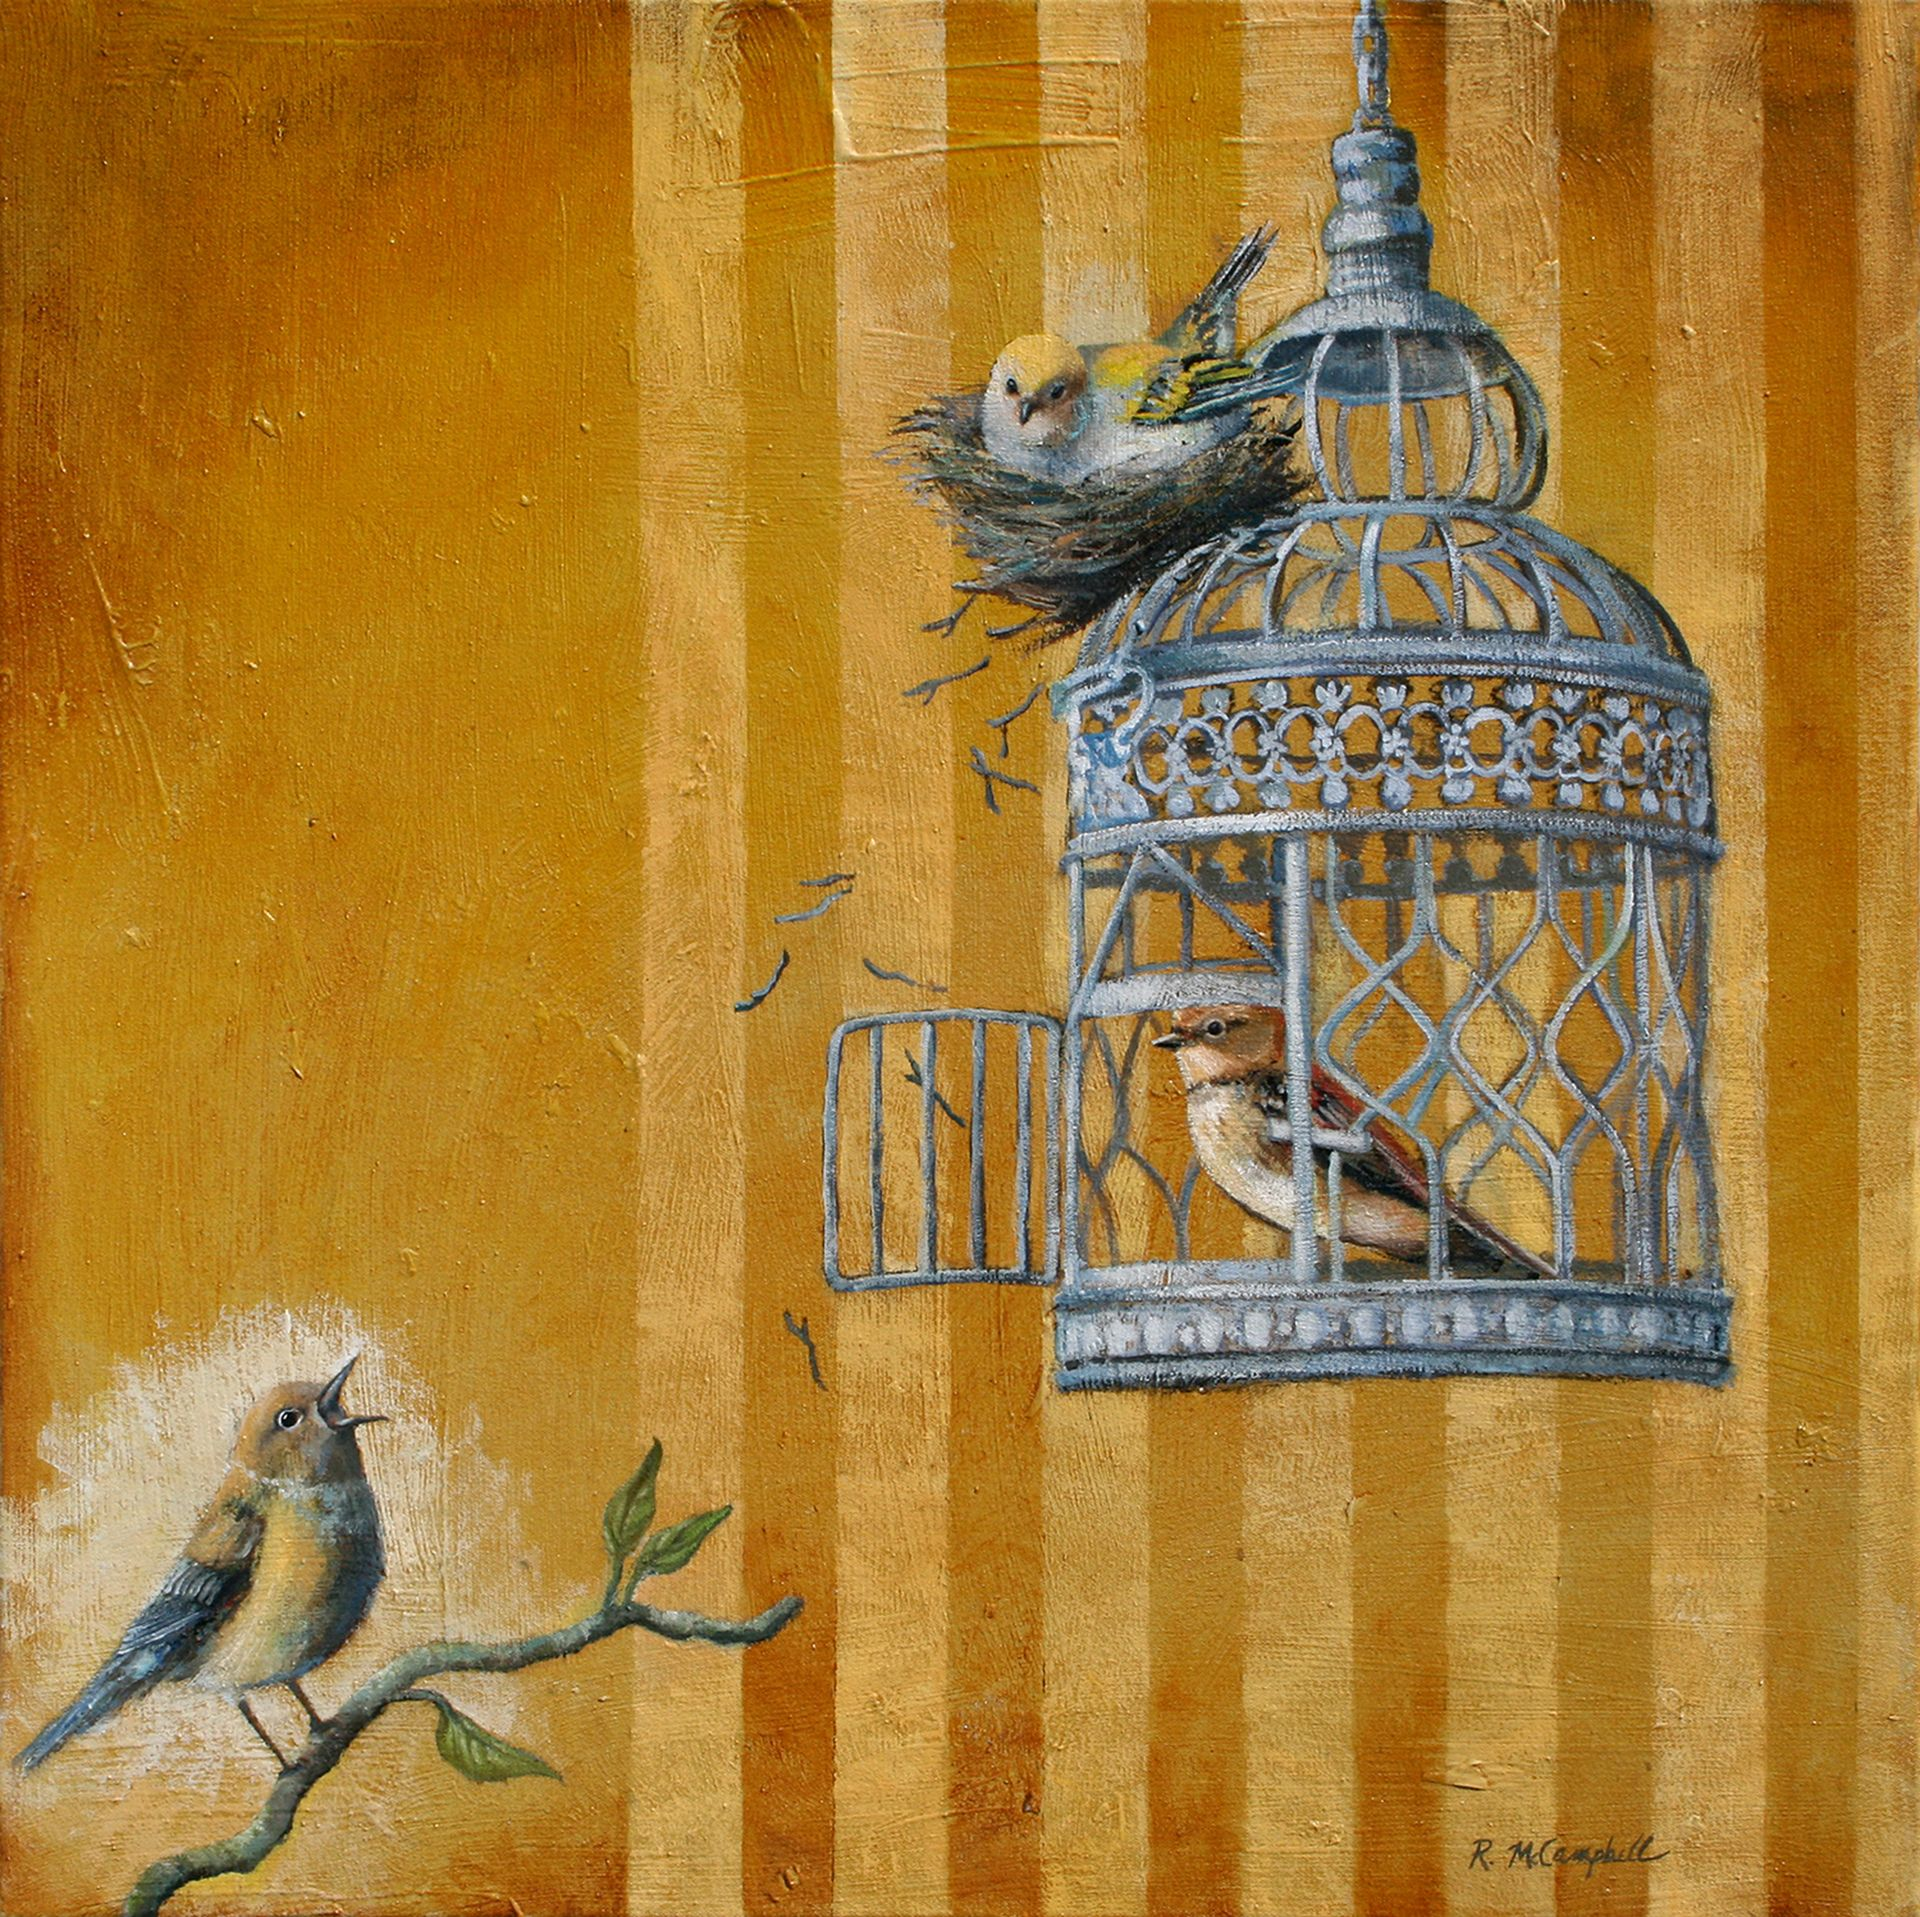 vintage bird cages interest me along the theme of dom i love to paint bird cages and this painting was inspired by the a angelou poem